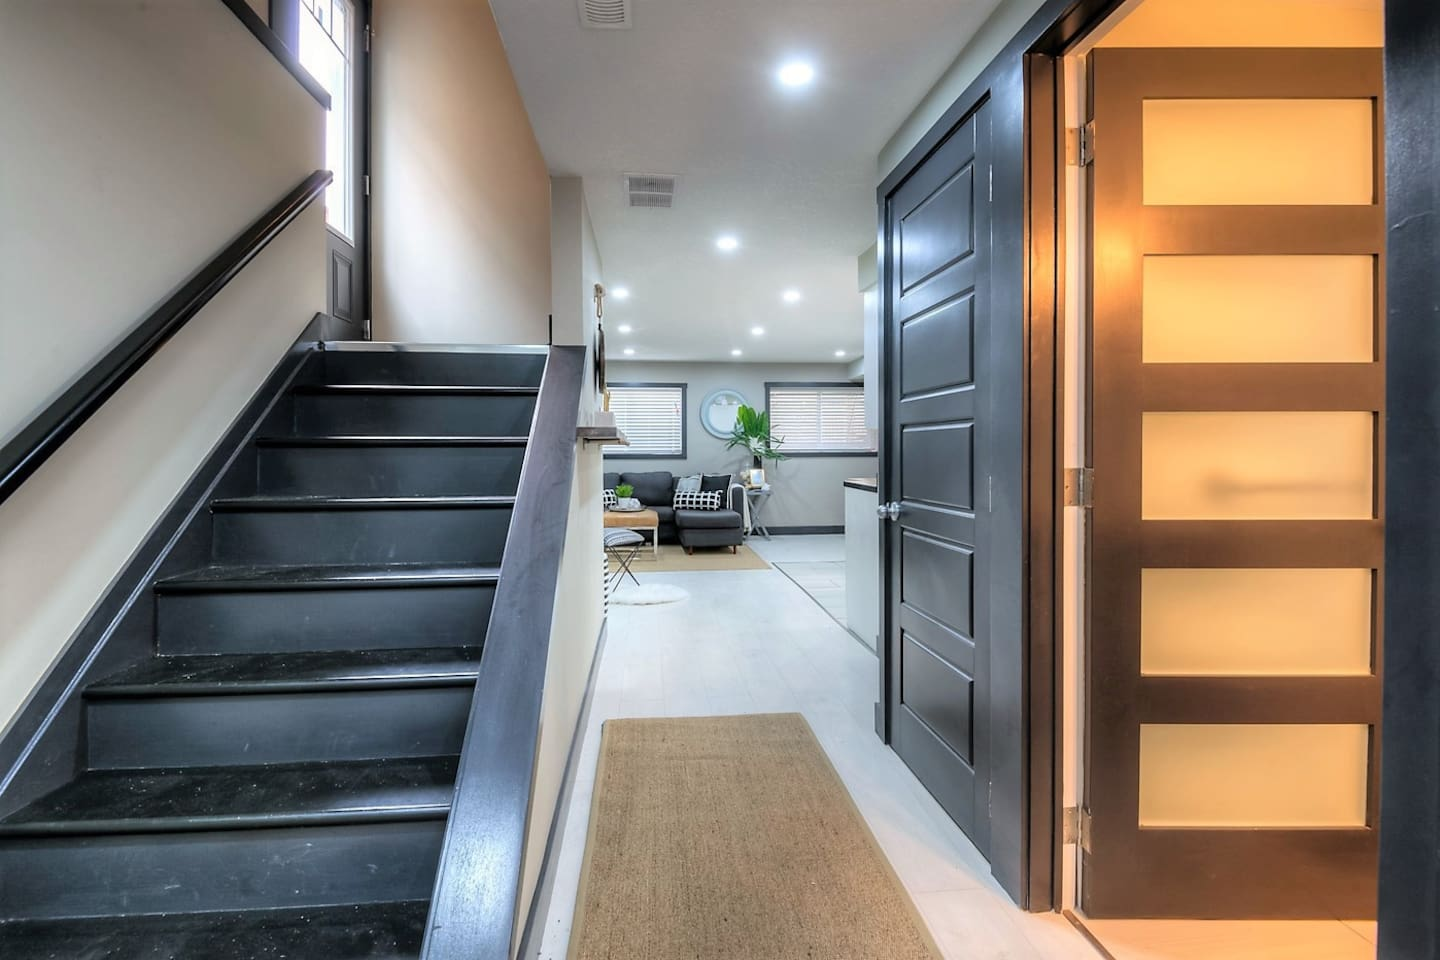 Spacious basement space equipped with amenities to guarantee a comfortable stay